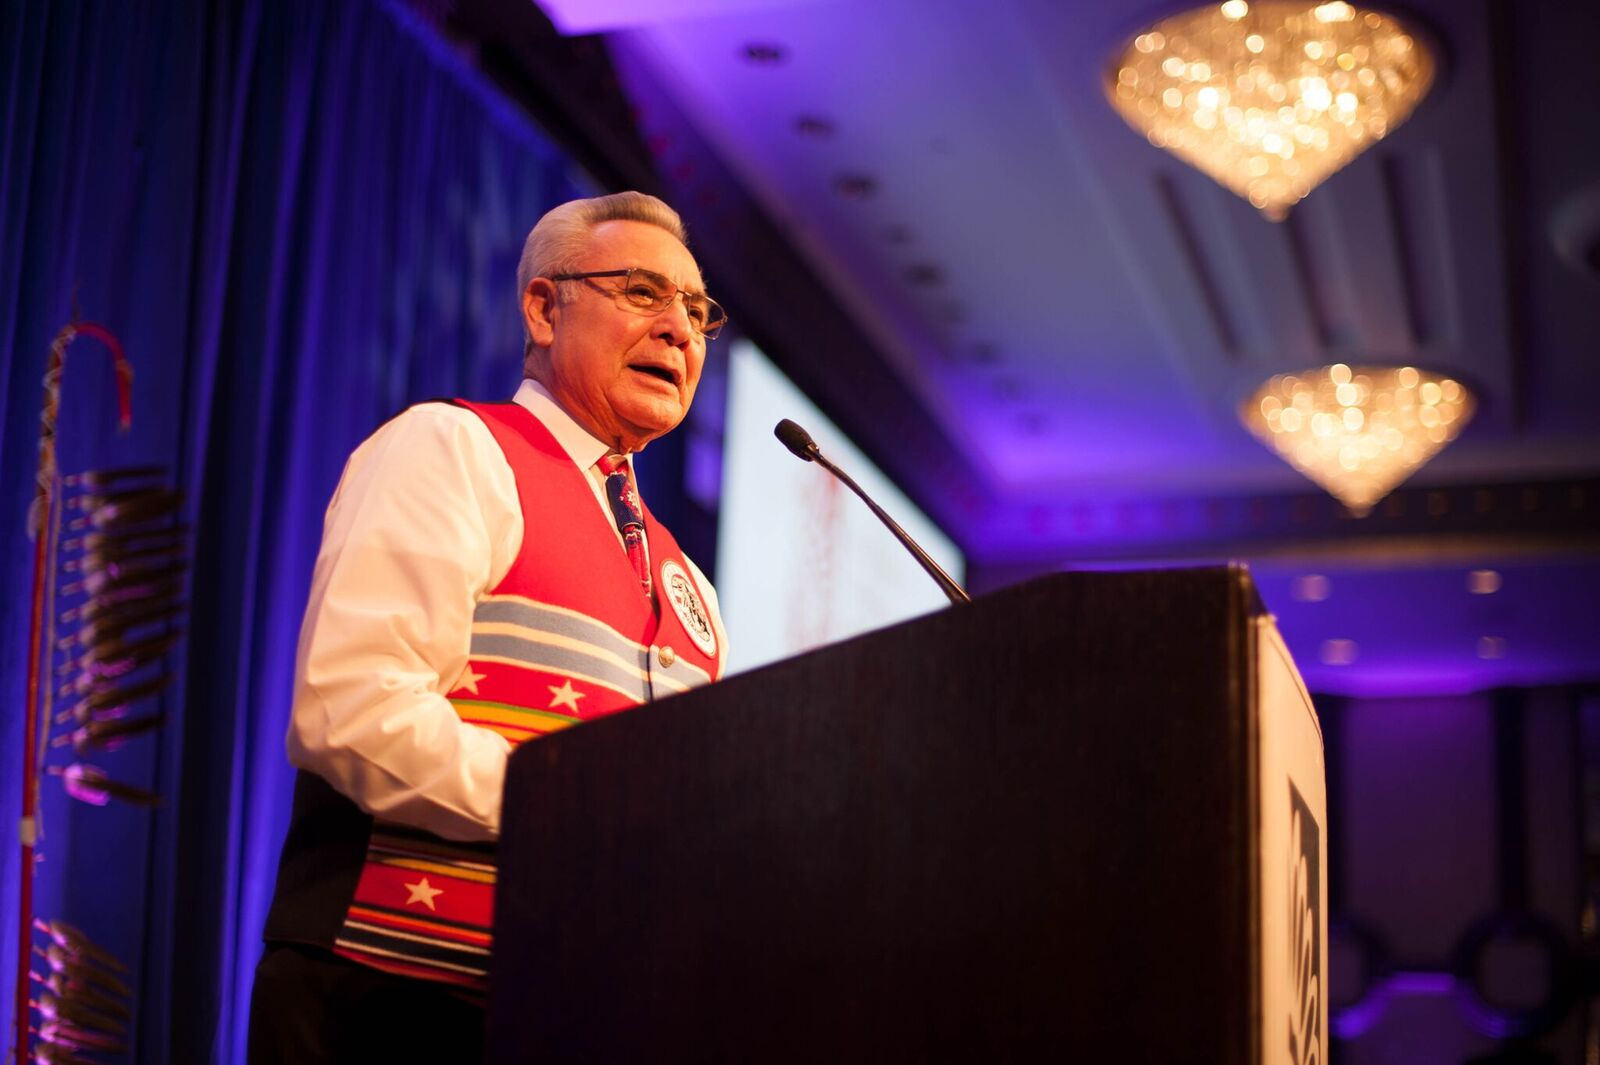 'We will be back' vows leader of National Congress of American Indians after sovereignty vote fails